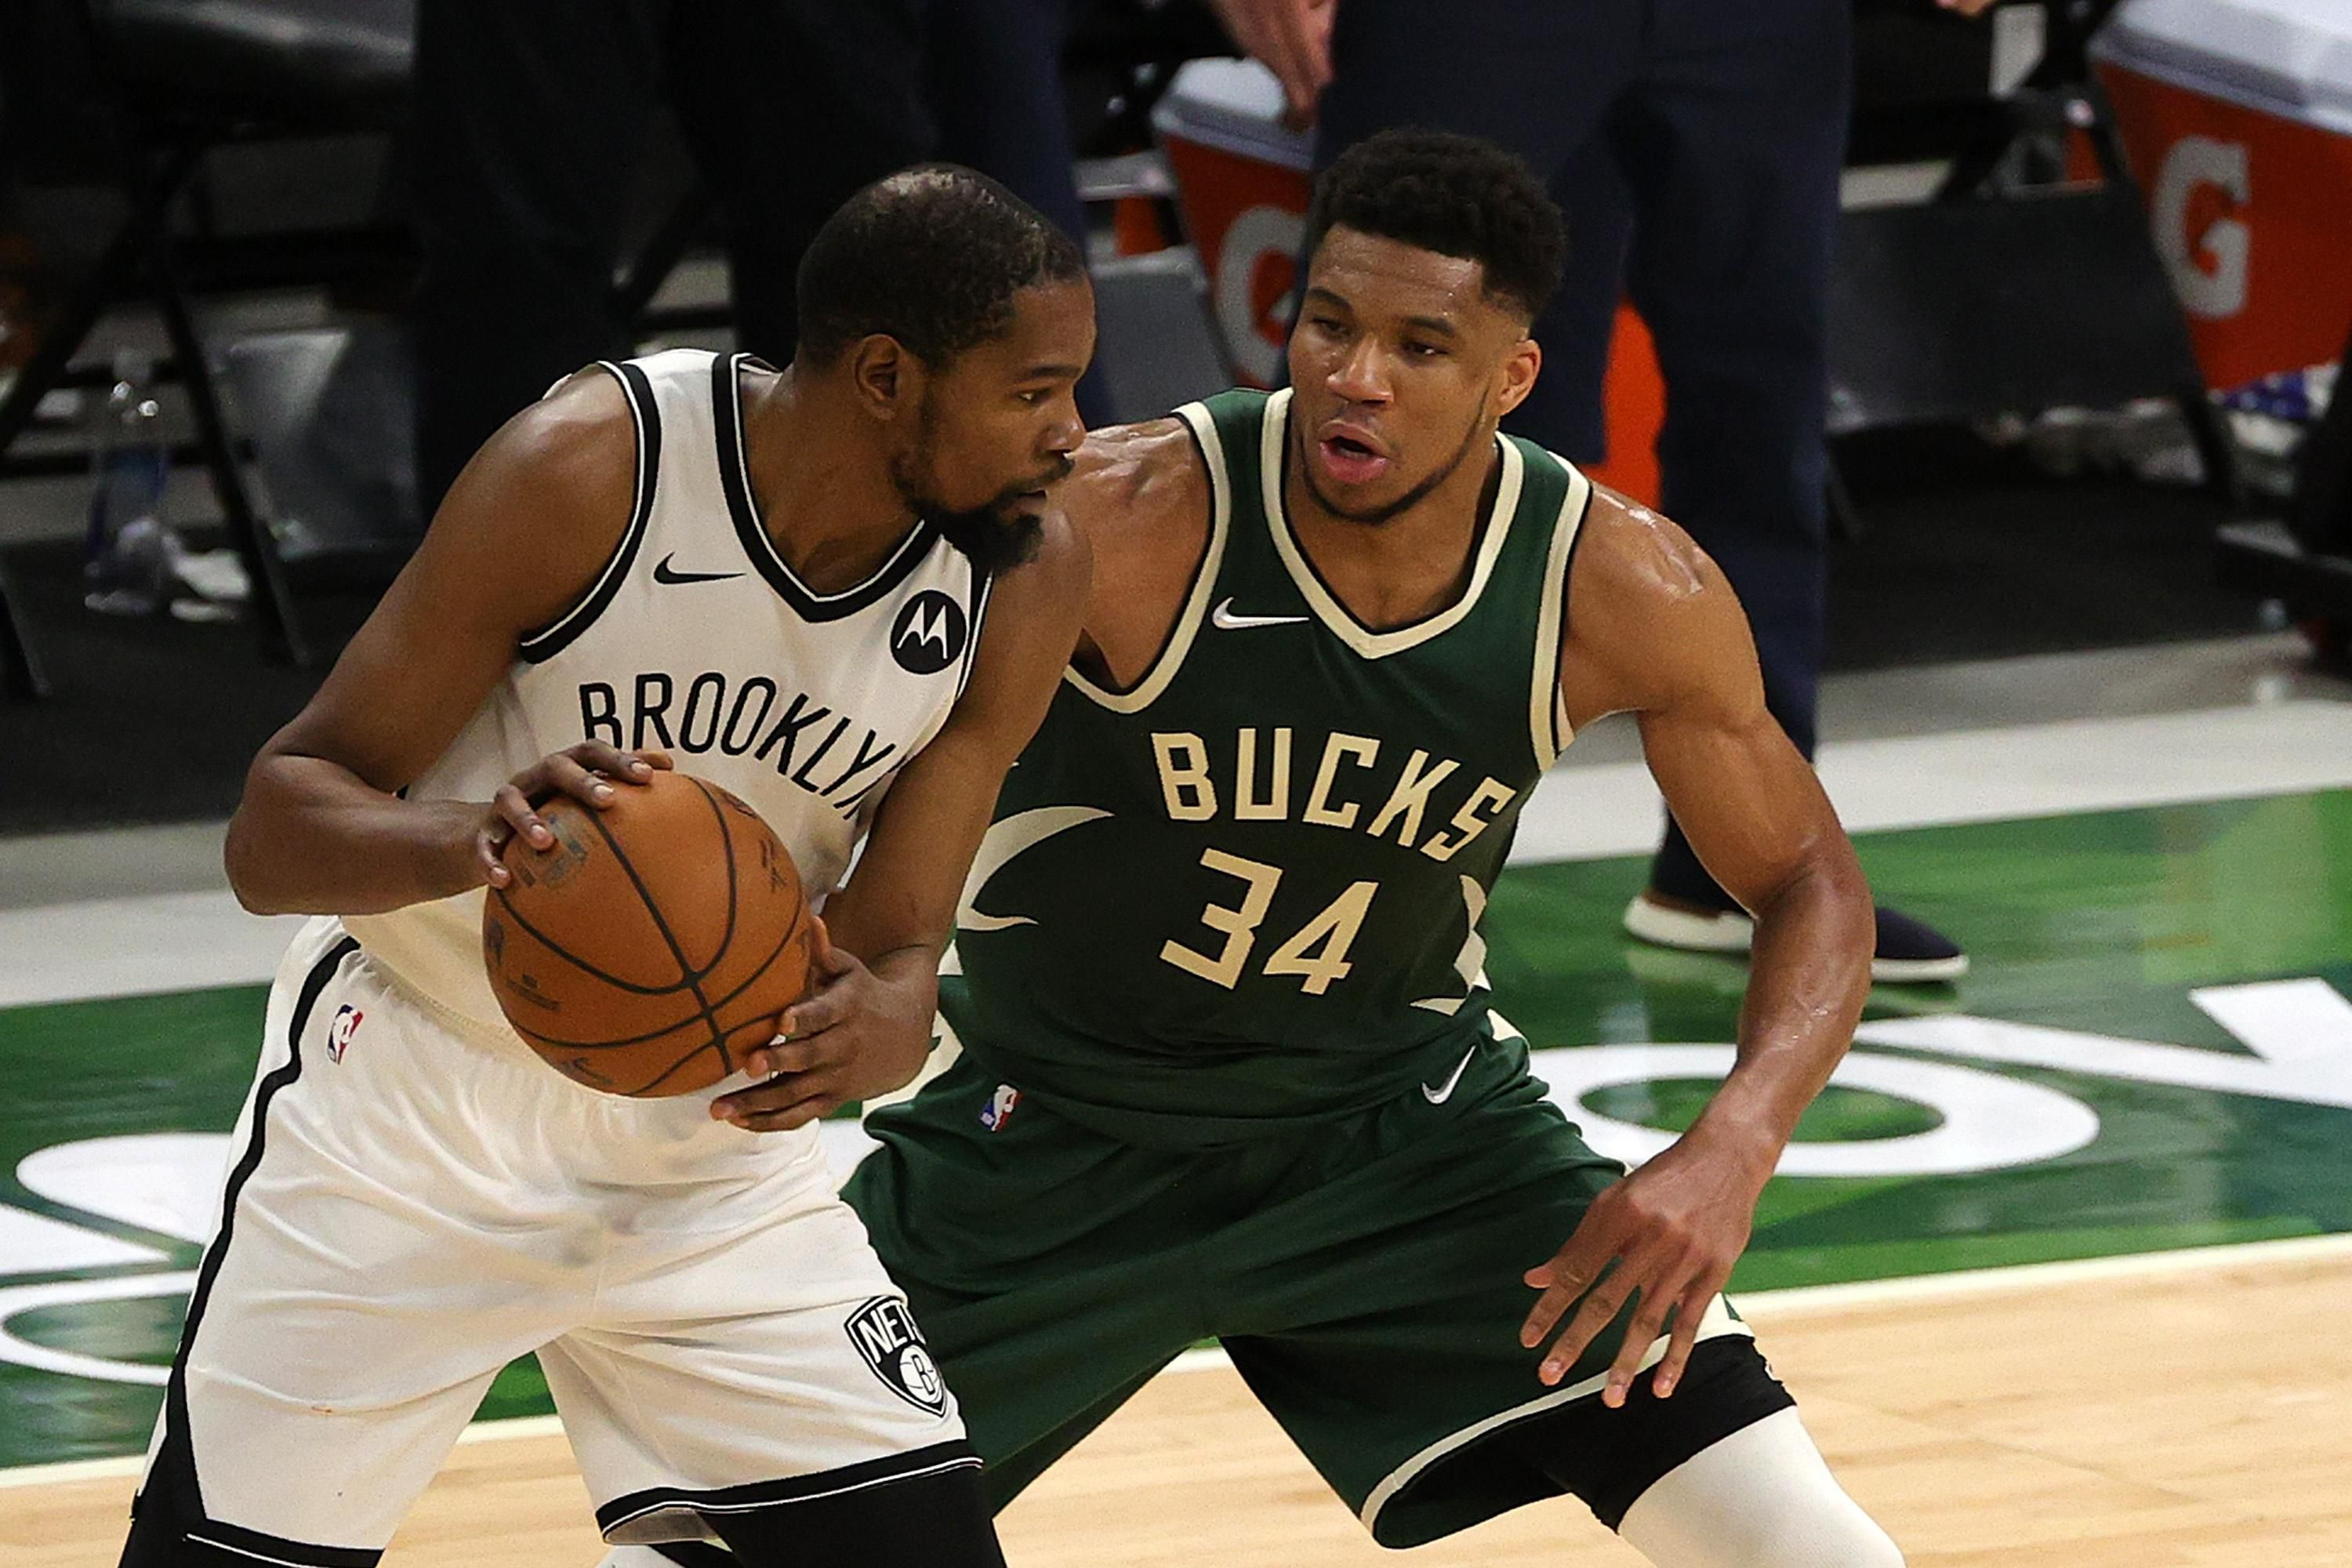 2021 NBA Playoff Bracket: Schedule, Start Time, Odds, Game 7 Predictions For Nets Vs. Bucks